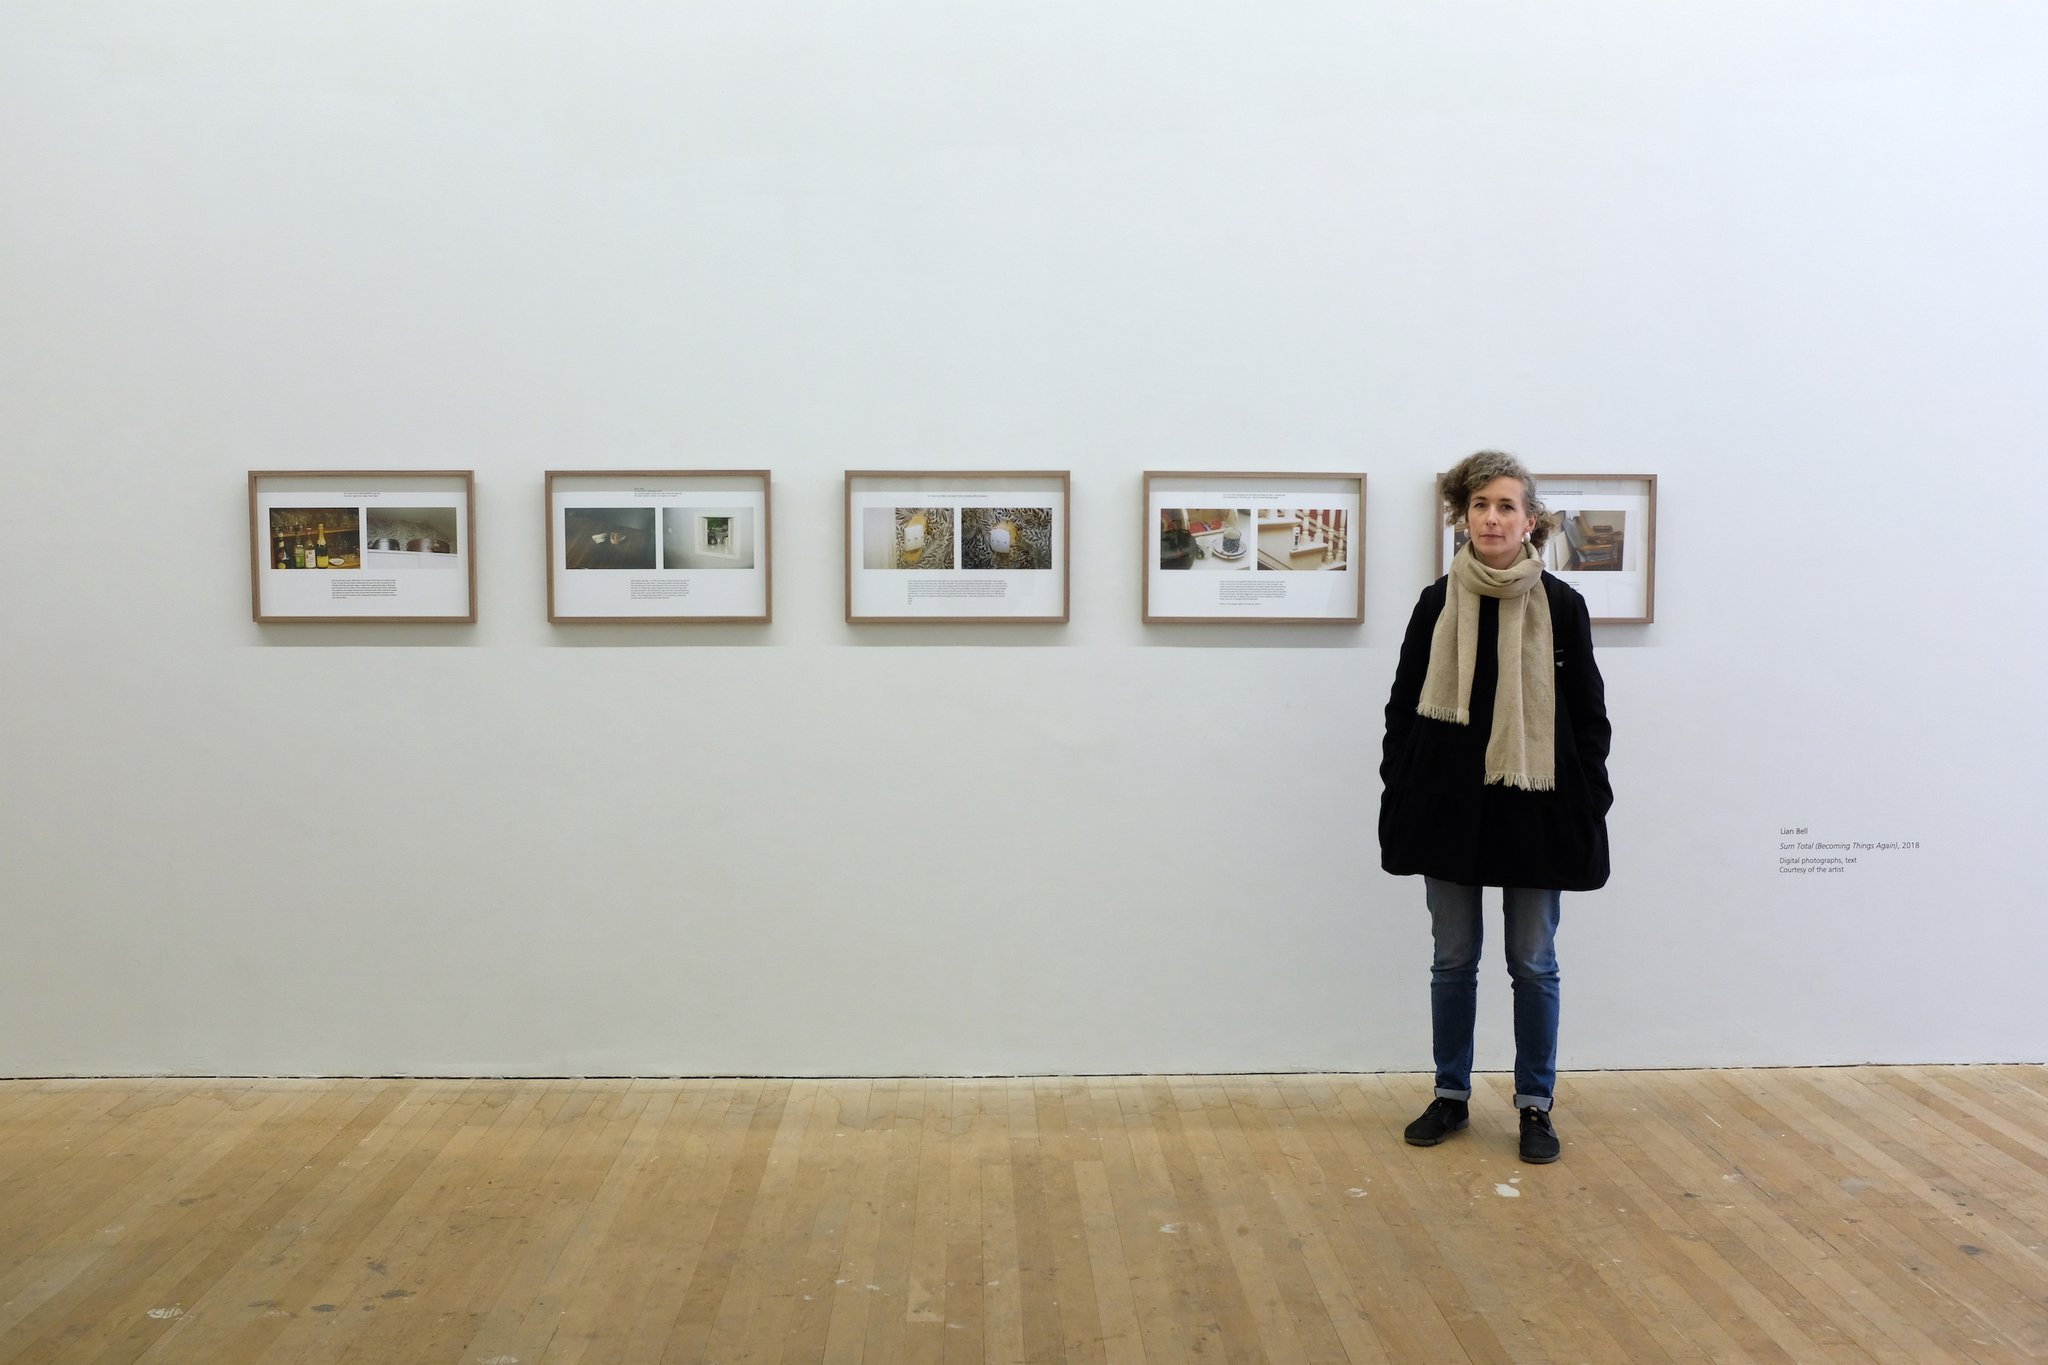 Lian in the Glucksman yesterday, photographed by her proud father.